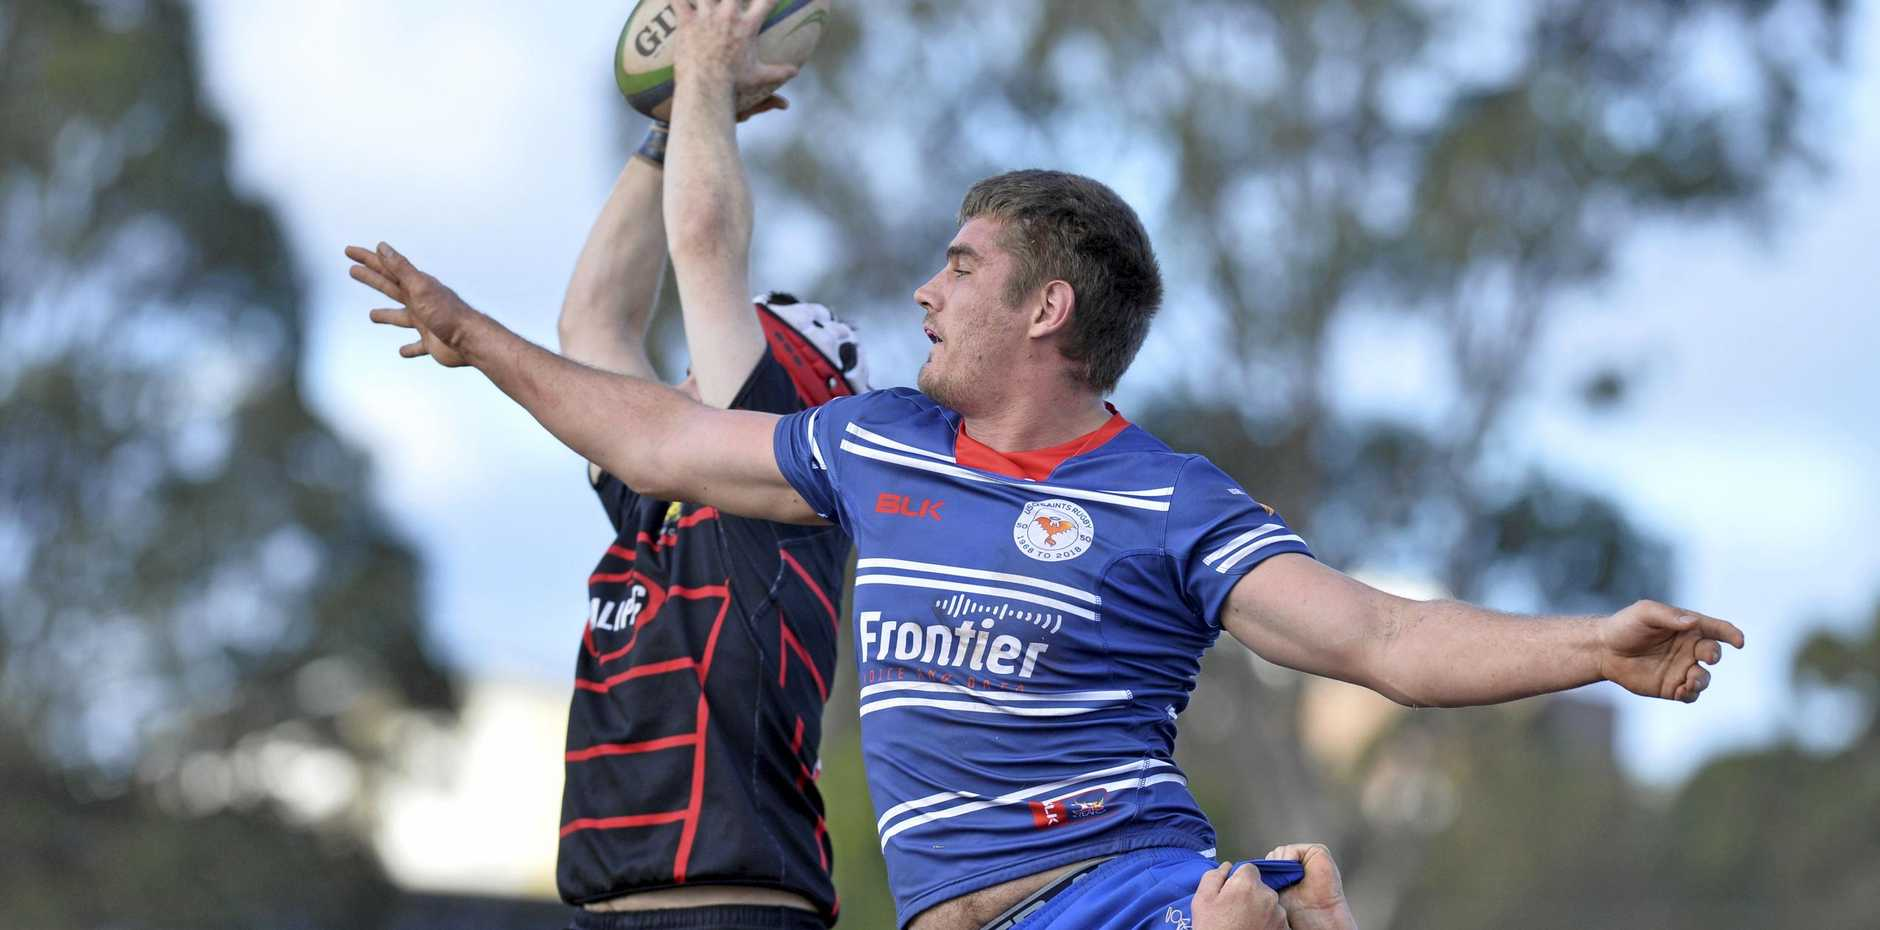 LINE-OUT: Gatton's Oscar Radford wins the ball in the air ahead of USQ's Andre van Staden on Saturday.